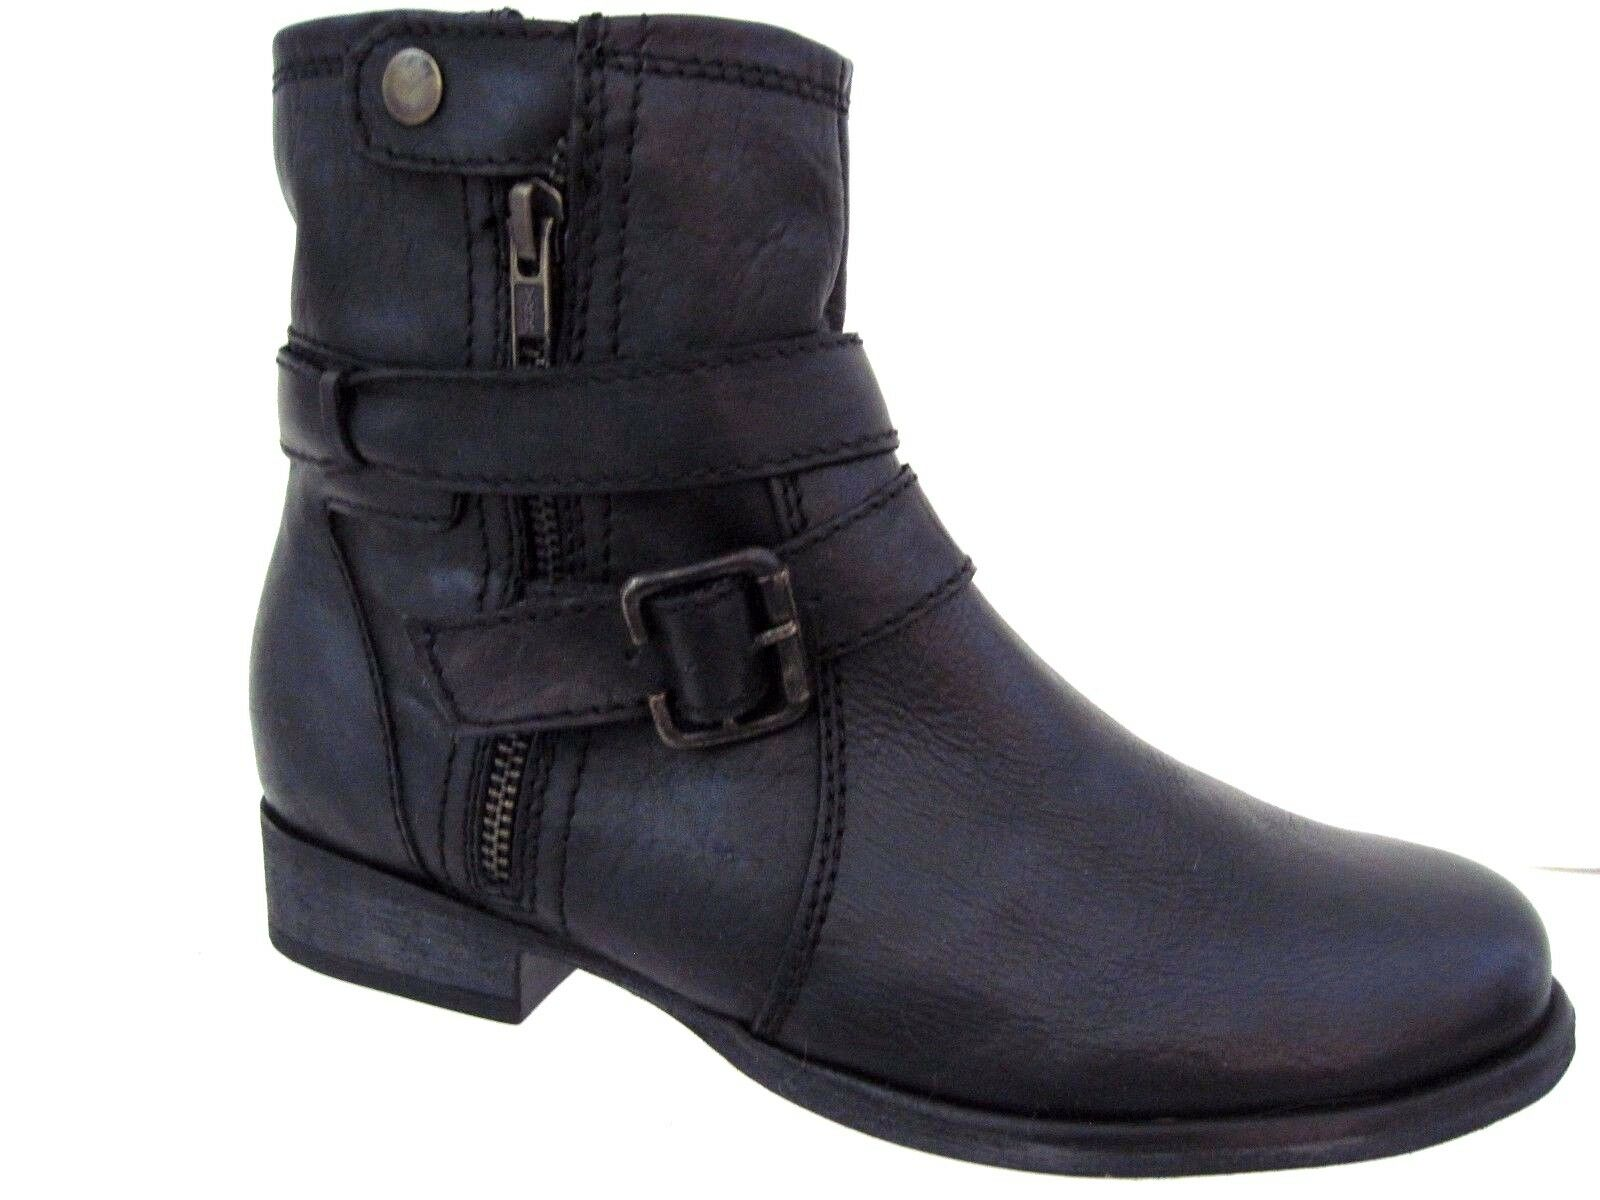 ZIGI GIRL Black Leather SUZETTE Urban Boots Size 6 M